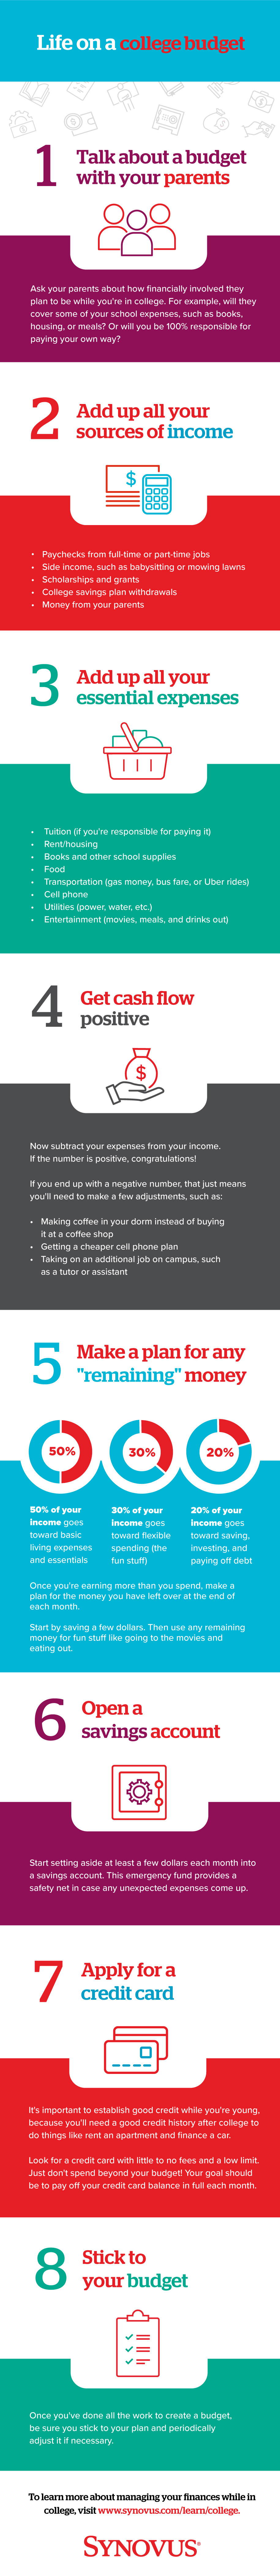 Infographic describing how to manage your money in college. A full description is available through a link beneath the image.